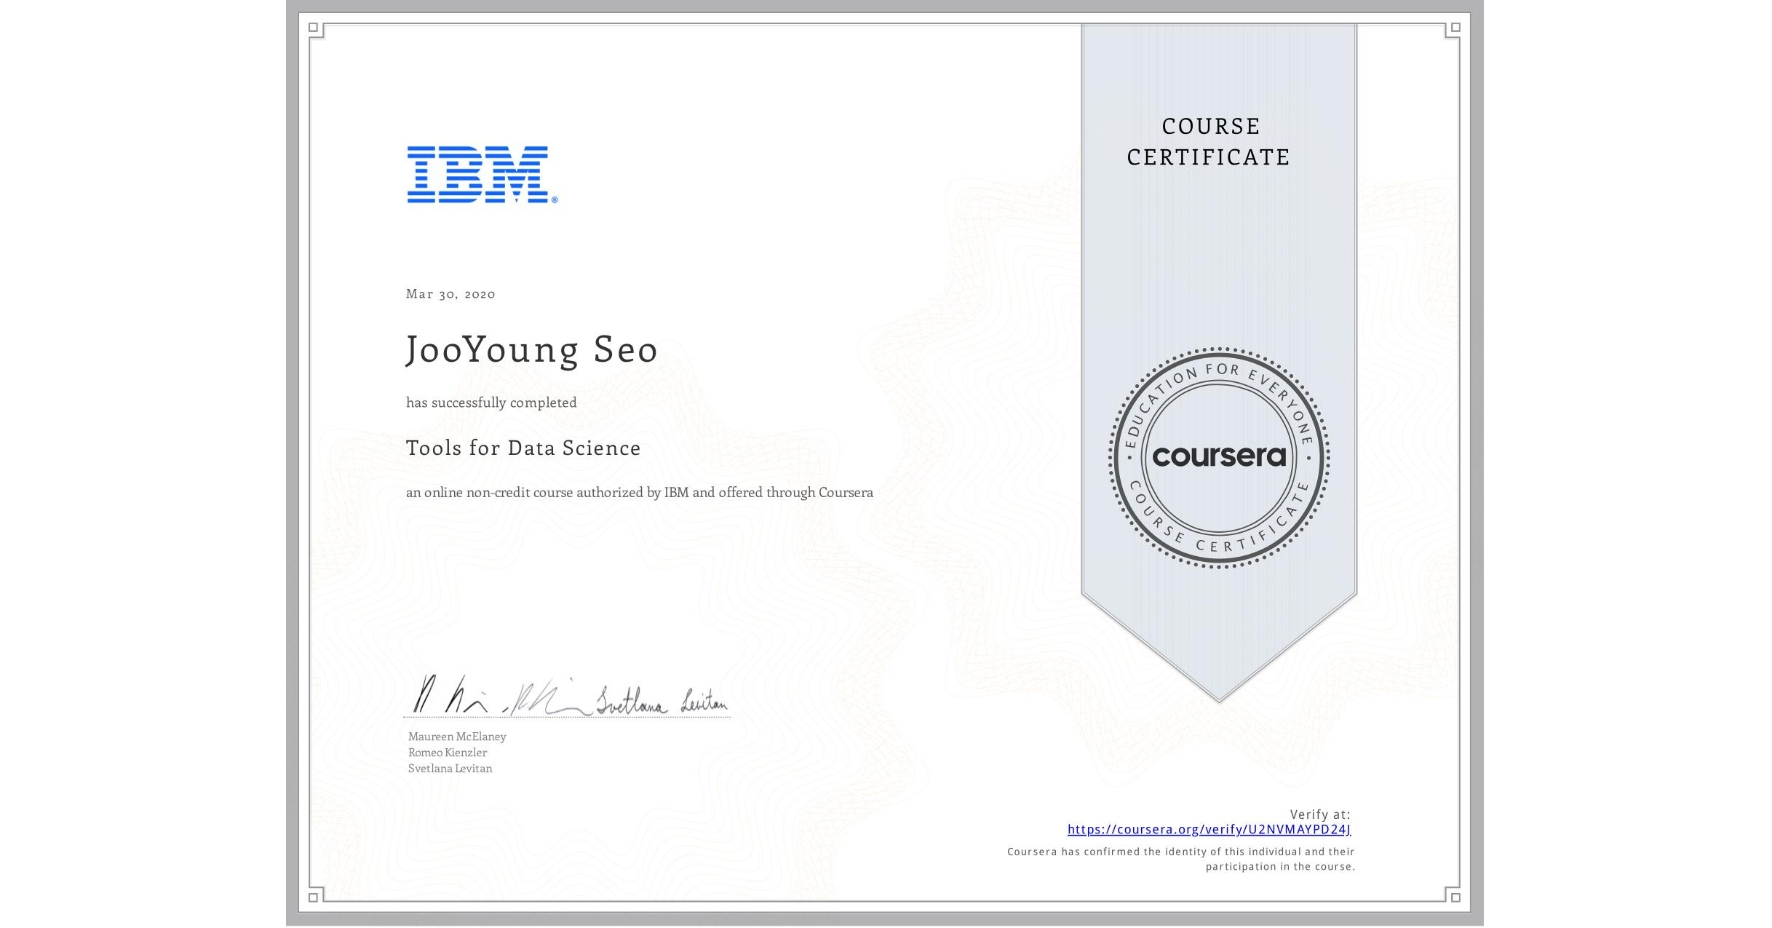 View certificate for JooYoung Seo, Tools for Data Science, an online non-credit course authorized by IBM and offered through Coursera